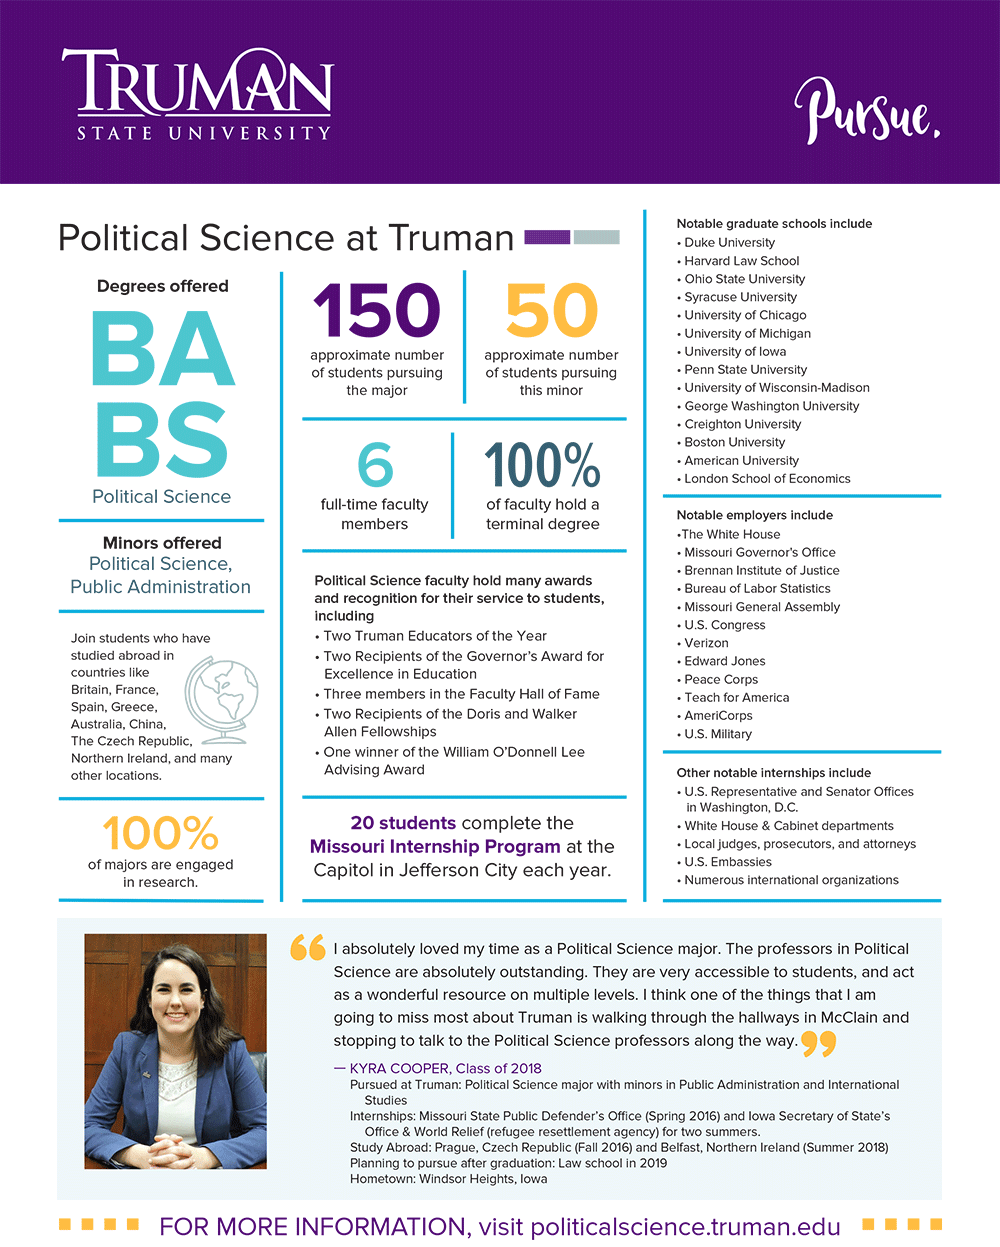 political science quick facts truman state university